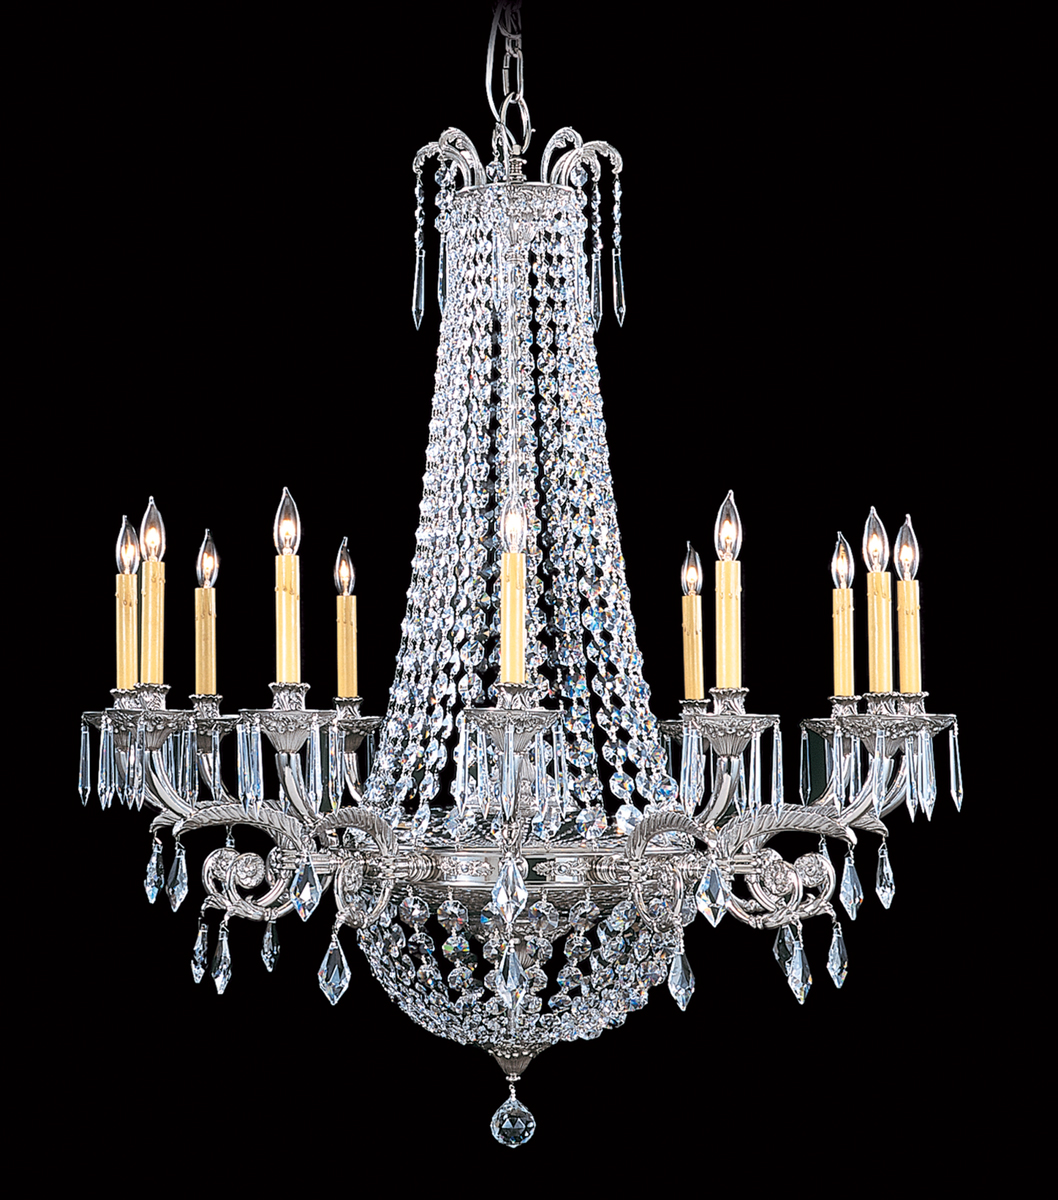 Framburg Lighting 1152 12 Light Czarina Foyer Chandelier